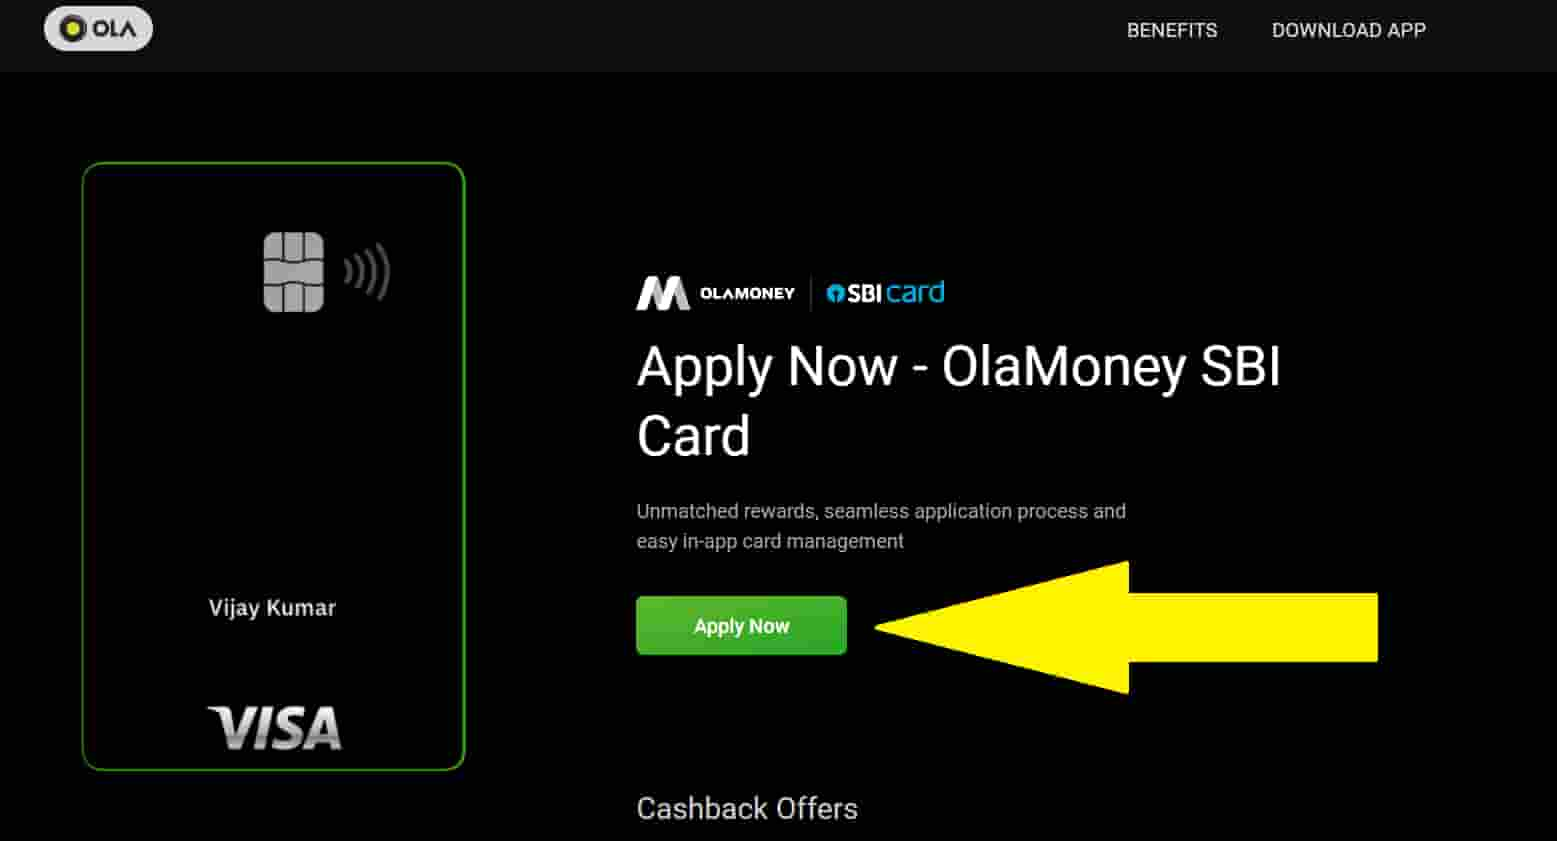 How to apply OLA Money SBI Card credit card for free